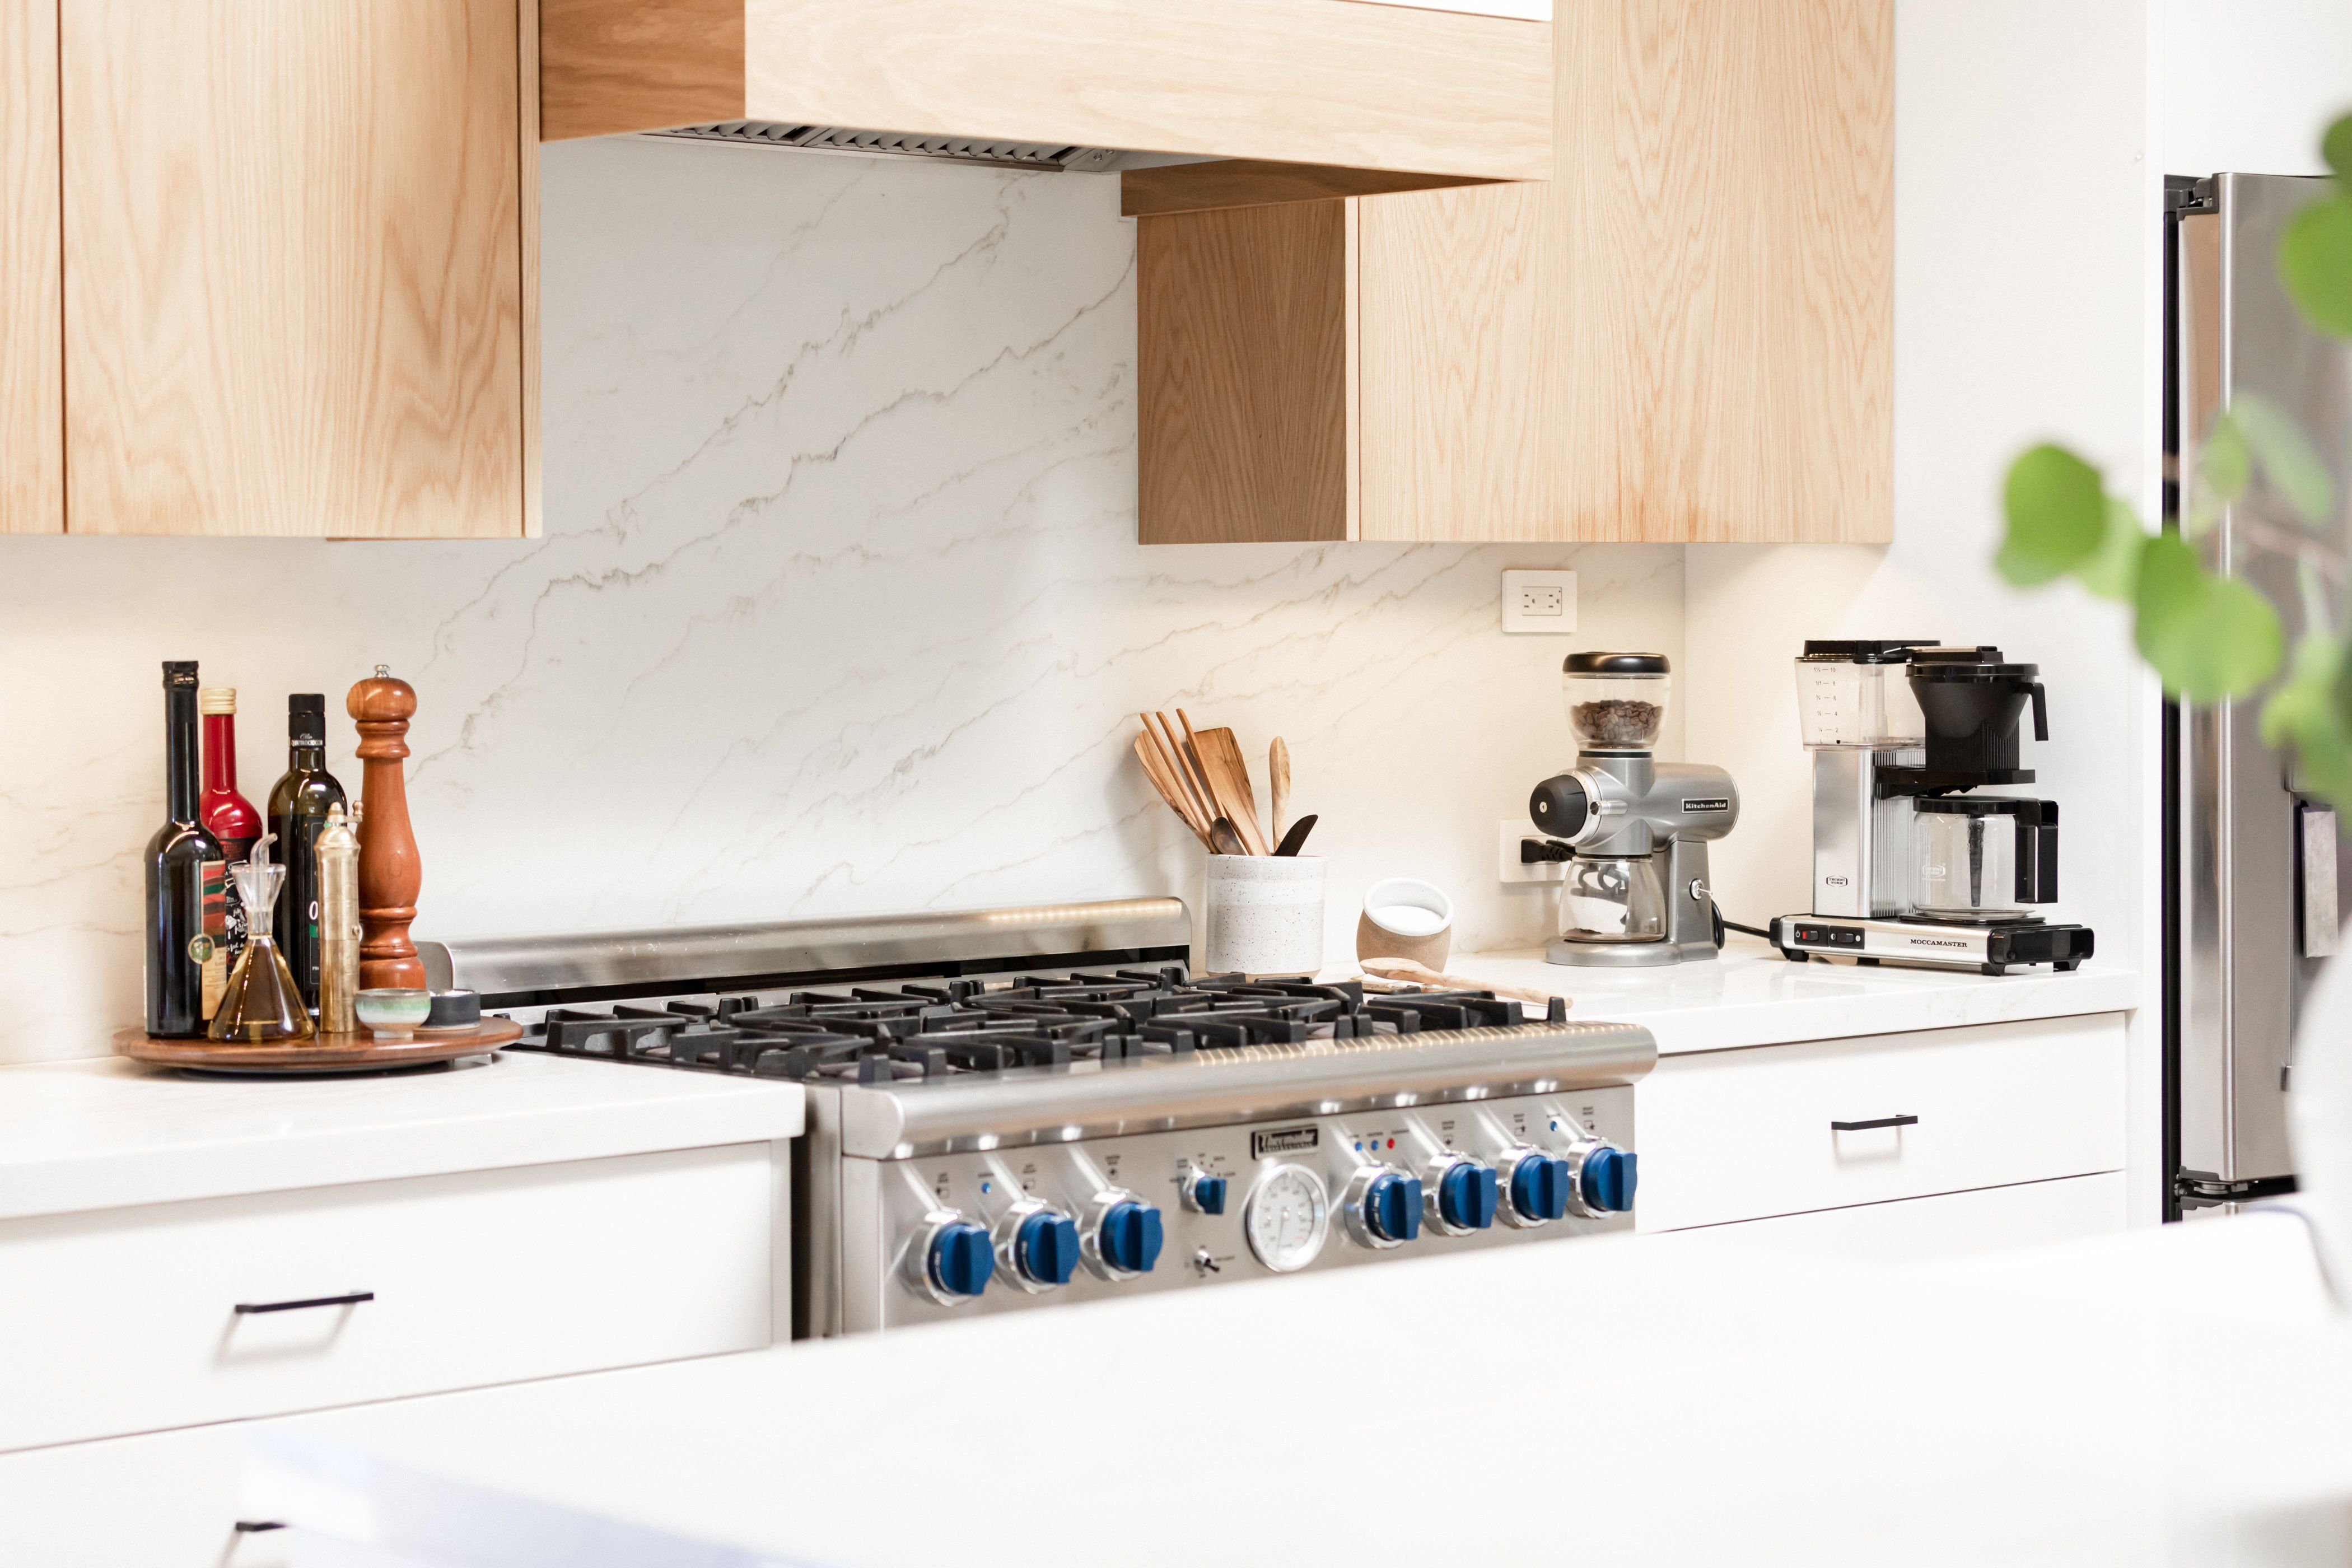 Oak Cabinets in Your Kitchen: What to Know Before You Reno #honeyoakcabinets Oak Cabinets: Kitchen Cabinet Ideas | Hunker #honeyoakcabinets